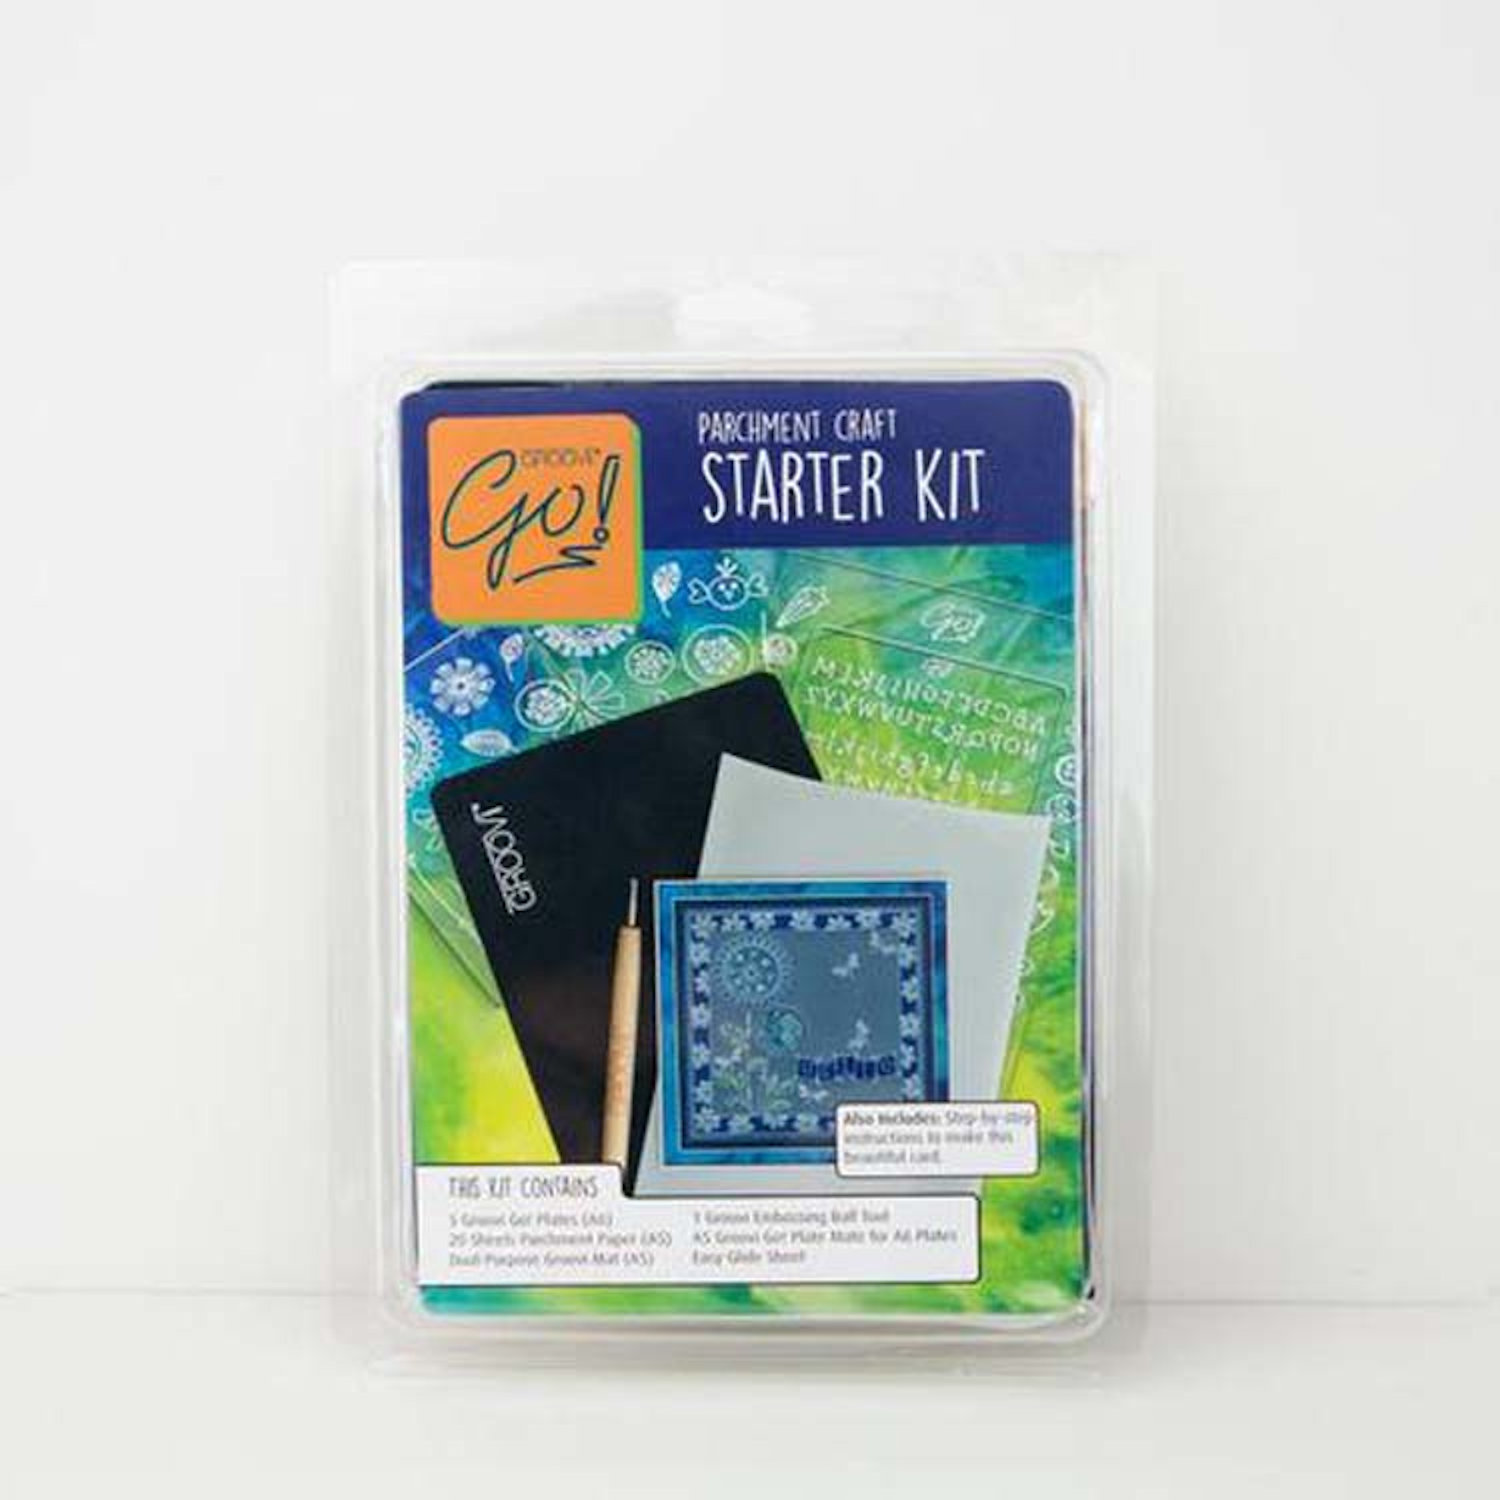 Groovi Go! Starter Kit by Clarity Stamp, GRO40765 ~ New!